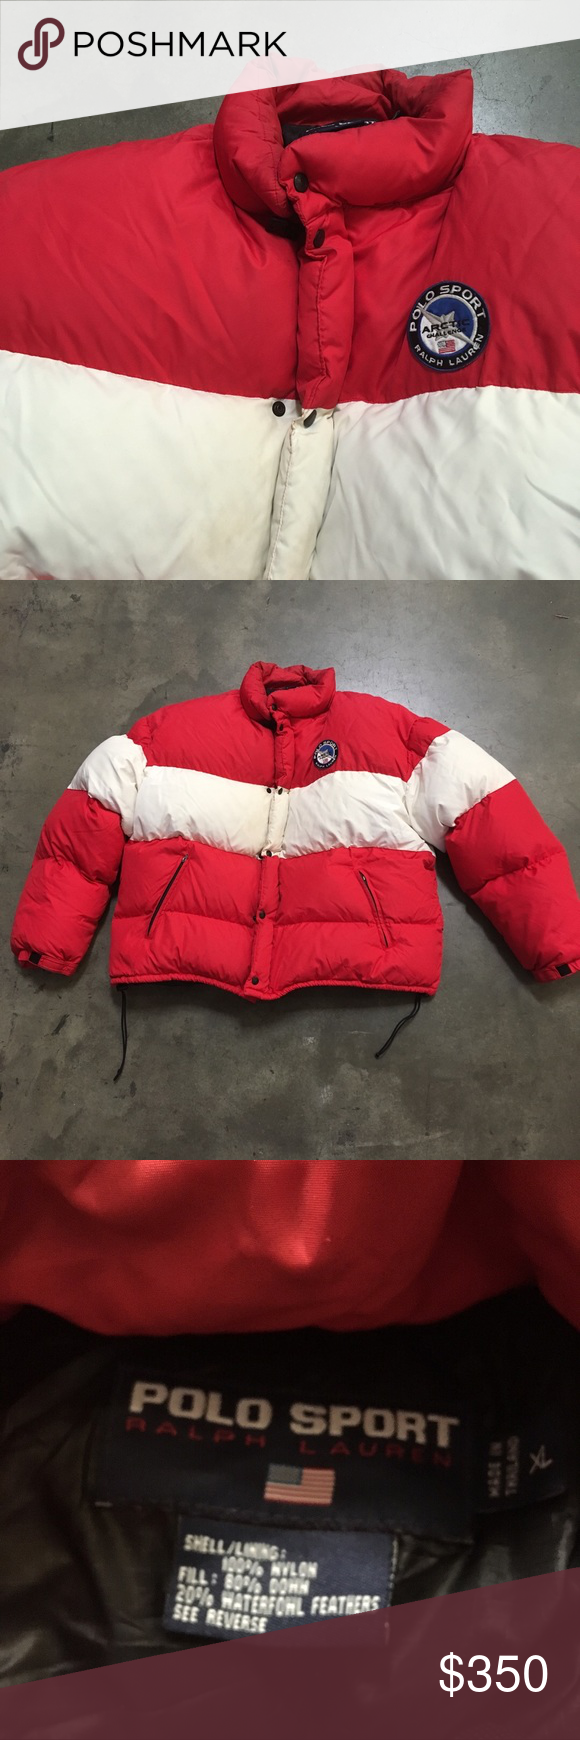 Polo Sport Arctic Challenge Vintage Puffer Jacket Polo Sport Arctic Challenge Vintage Puffer Jacket Polo By Ralph L Puffer Jackets Ralph Lauren Jackets Jackets [ 1740 x 580 Pixel ]